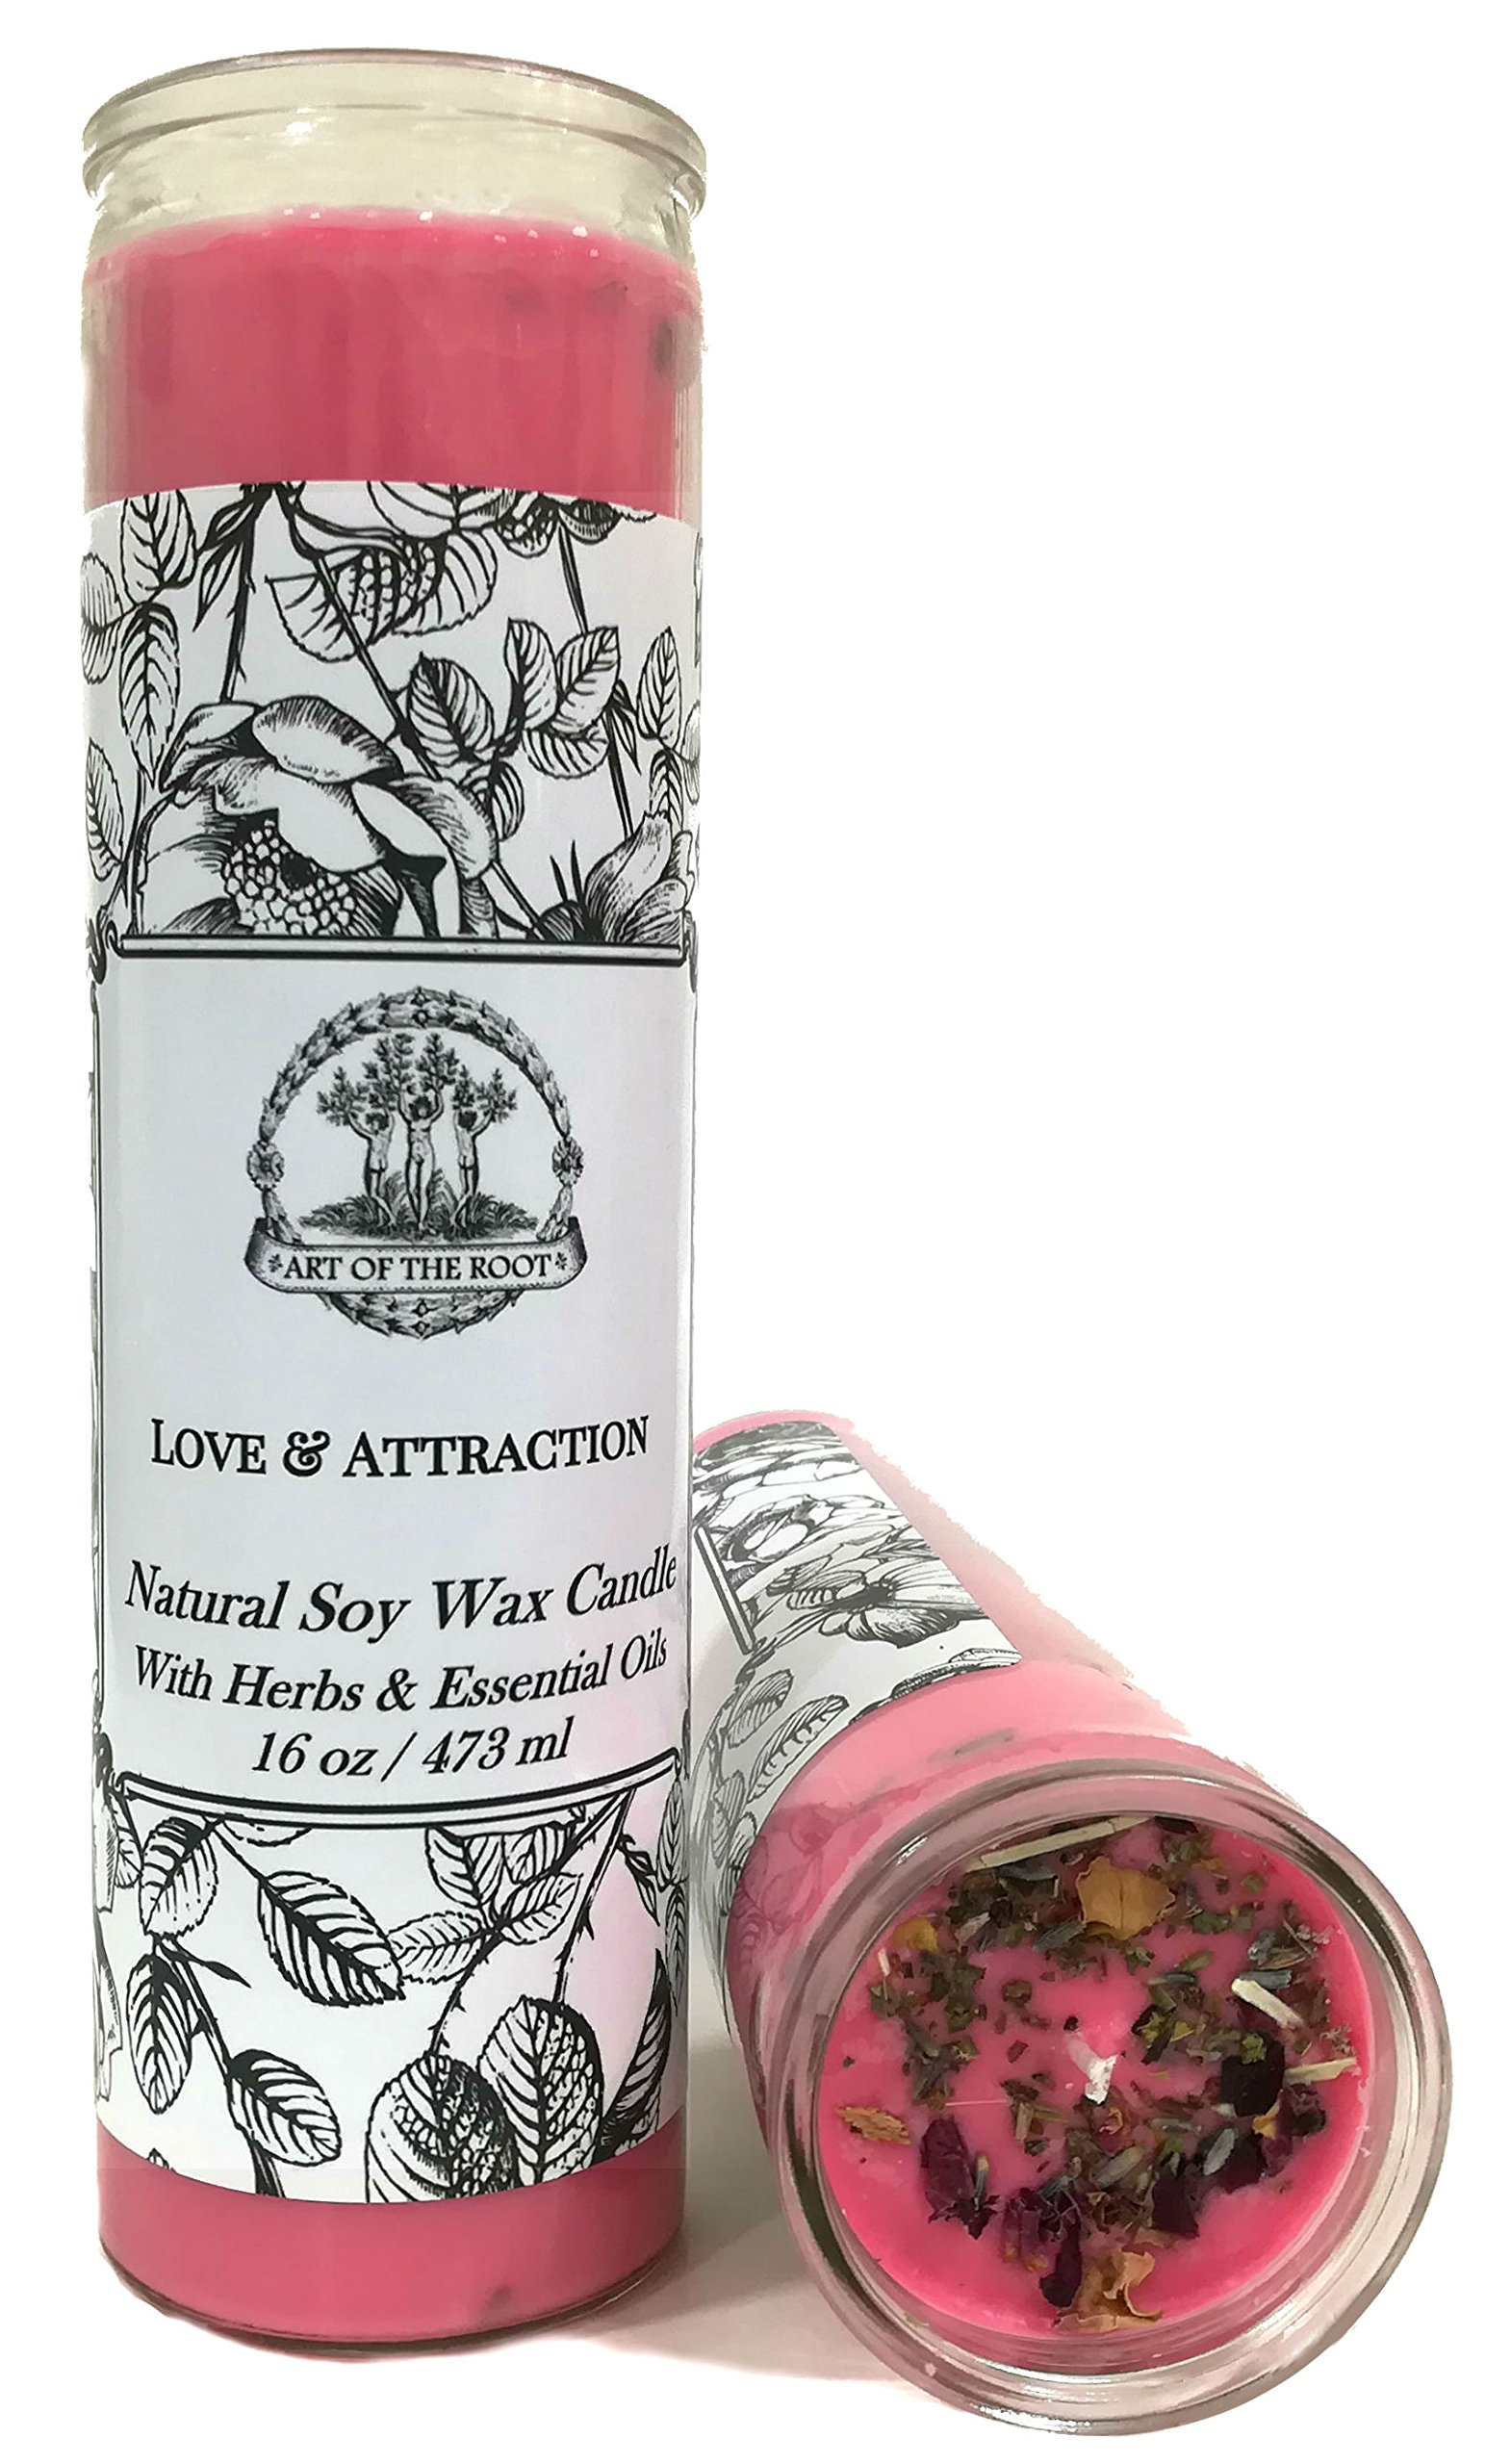 Love & Attraction 7 Day Soy Spell Candle (Fixed) for Relationships, Marriage Proposals & Commitment (Wiccan, Pagan, Hoodoo, Magick)